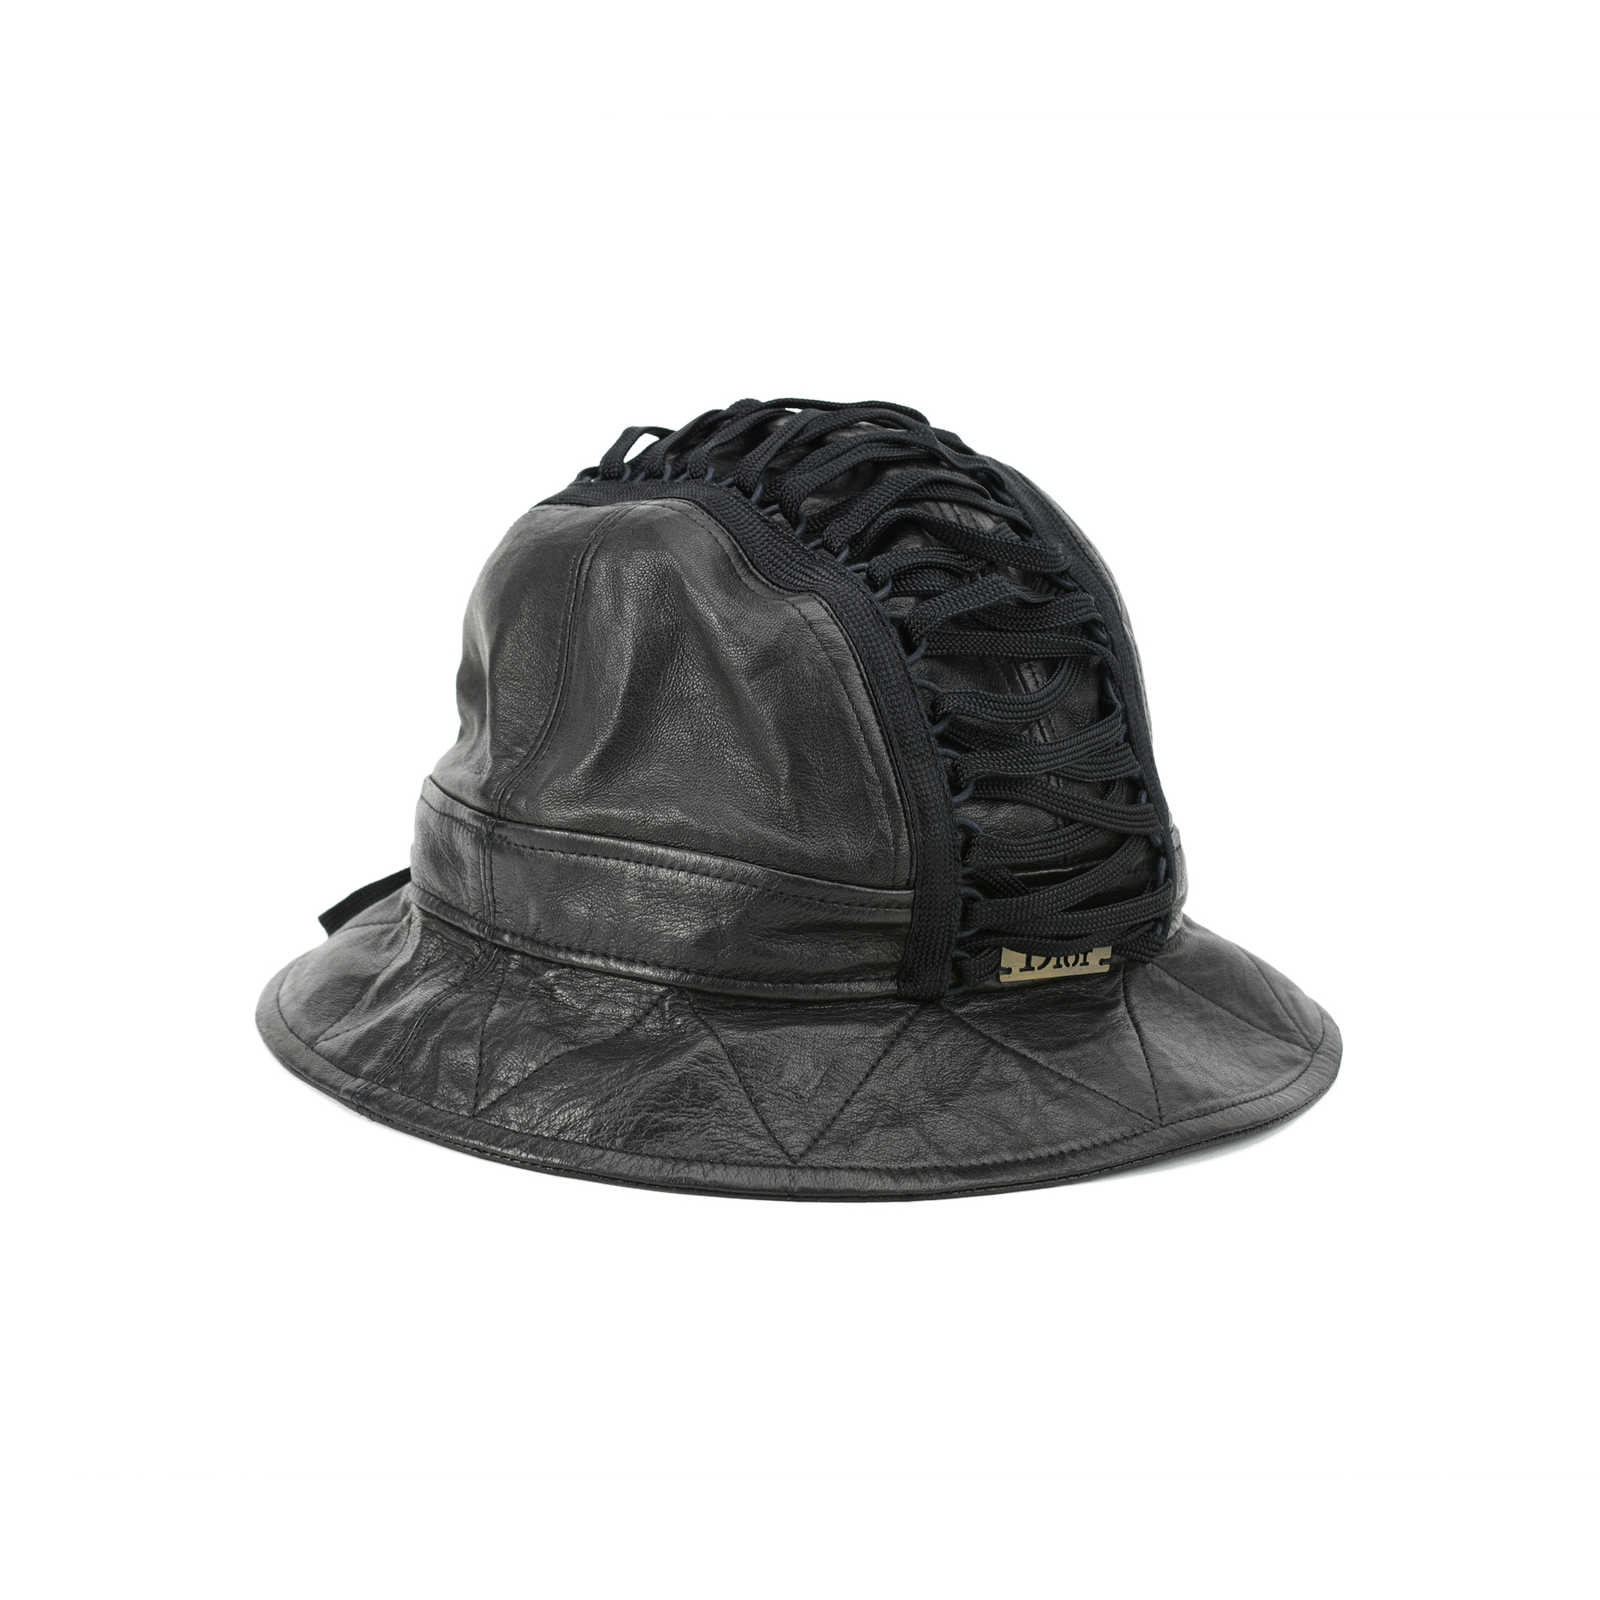 19b82cd8dc7b2 ... Authentic Second Hand Dior Leather Bucket Hat (PSS-200-00840) -  Thumbnail ...